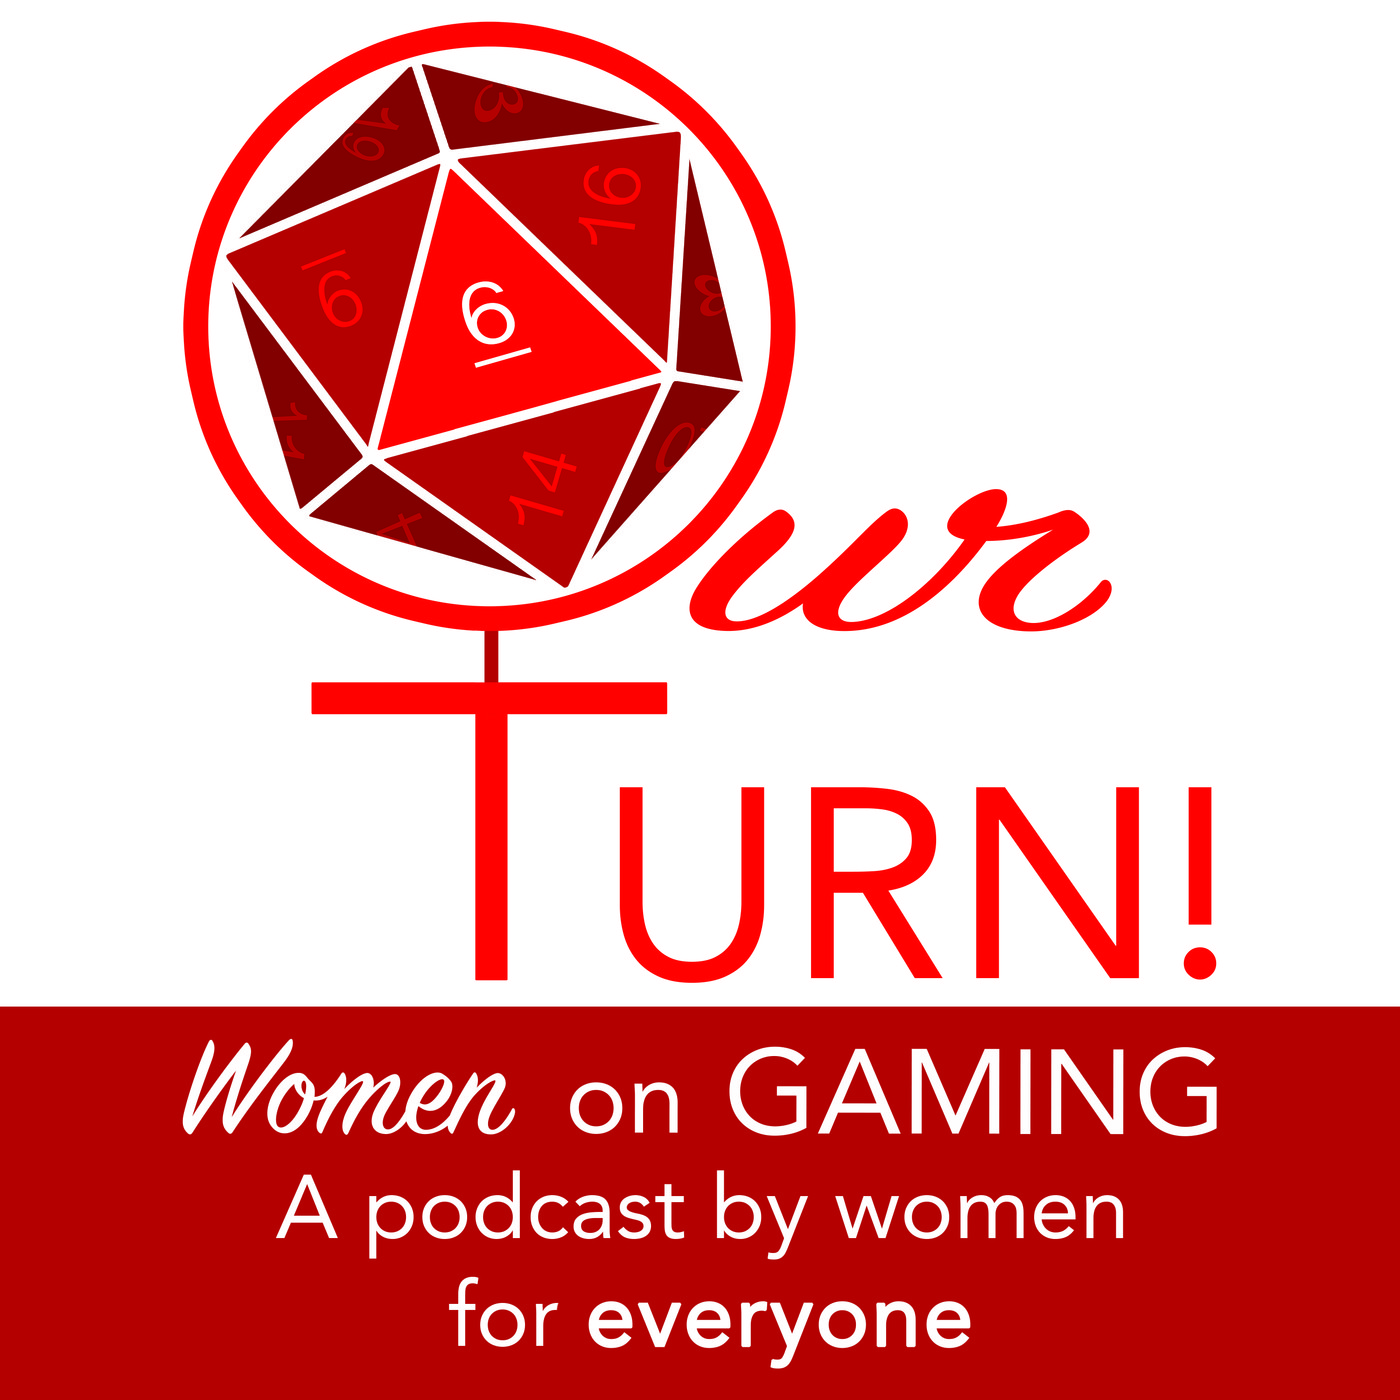 Our Turn! Women on Gaming